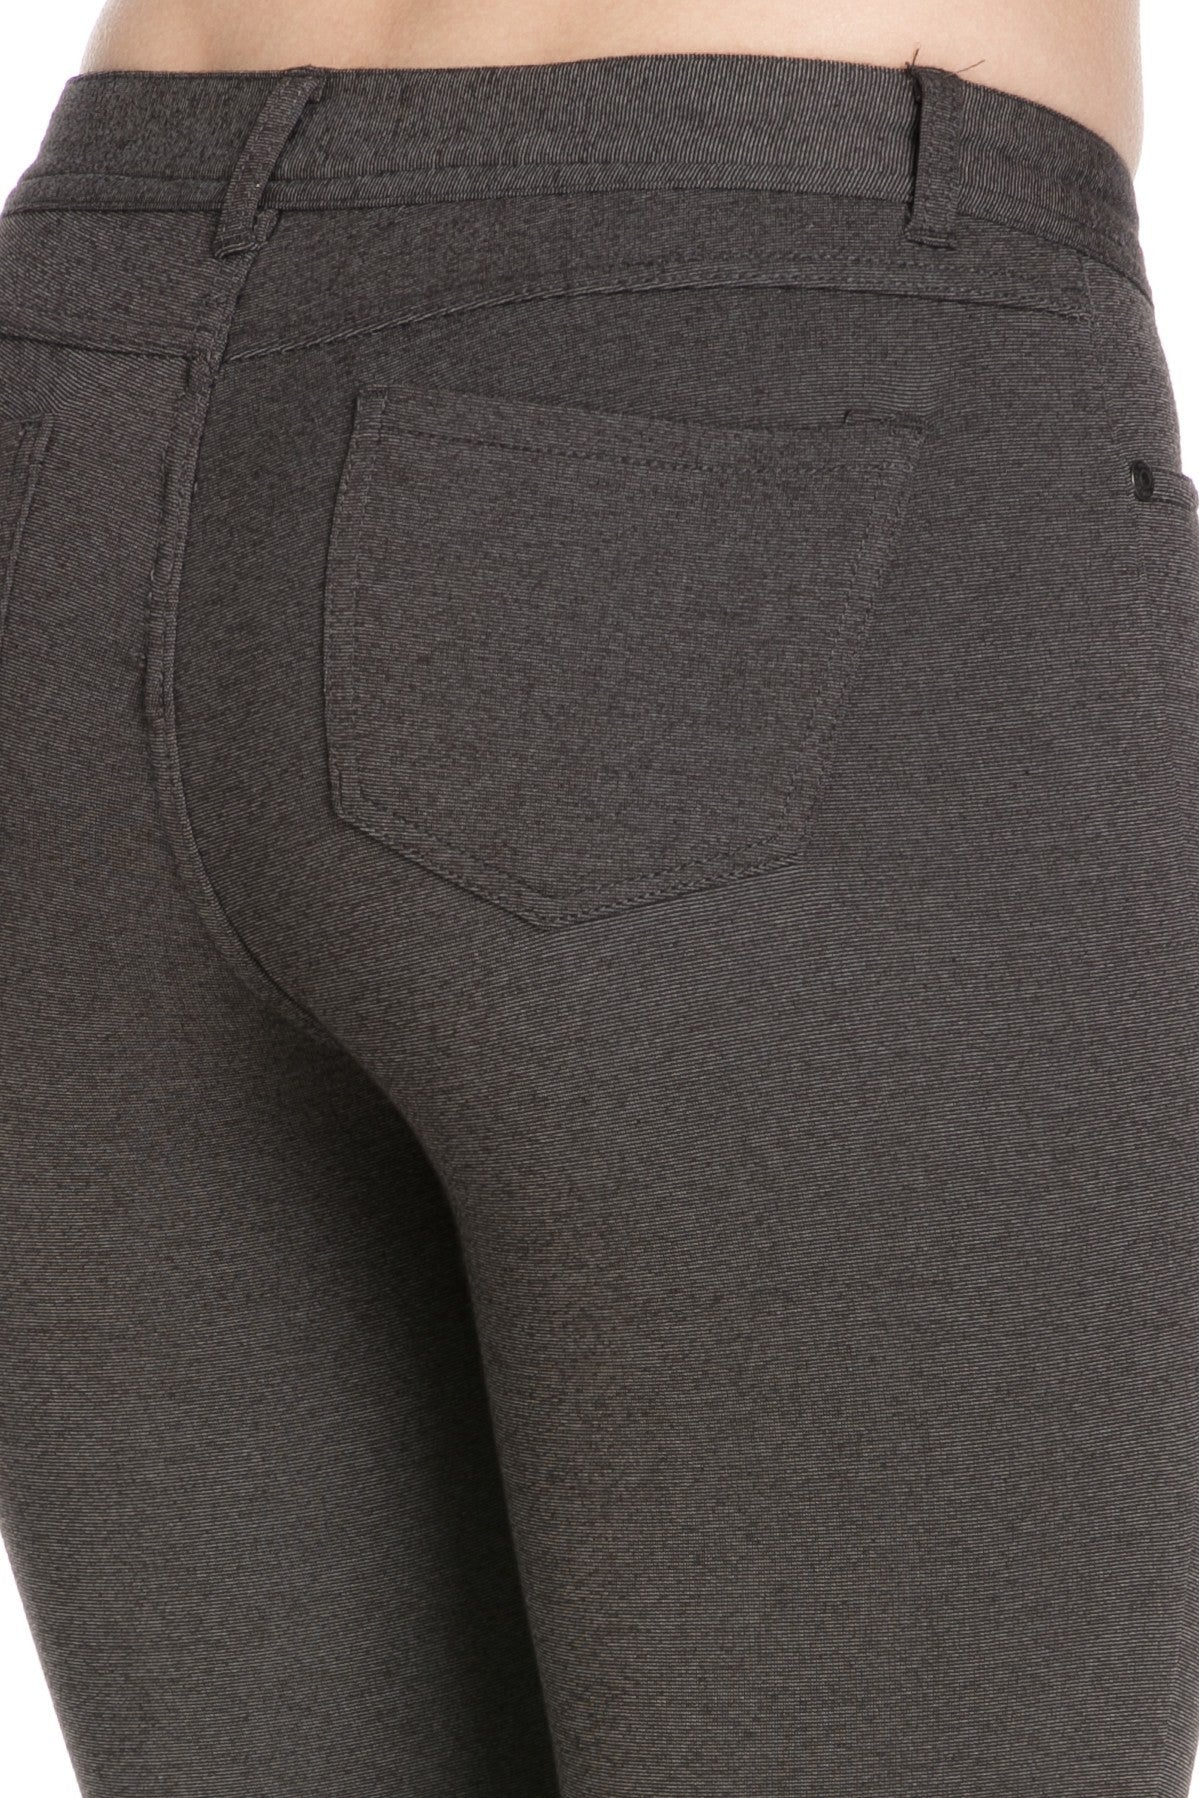 4 Way Stretchy Ponte Knit Capri Skinny Jeans (Charcoal) - Poplooks